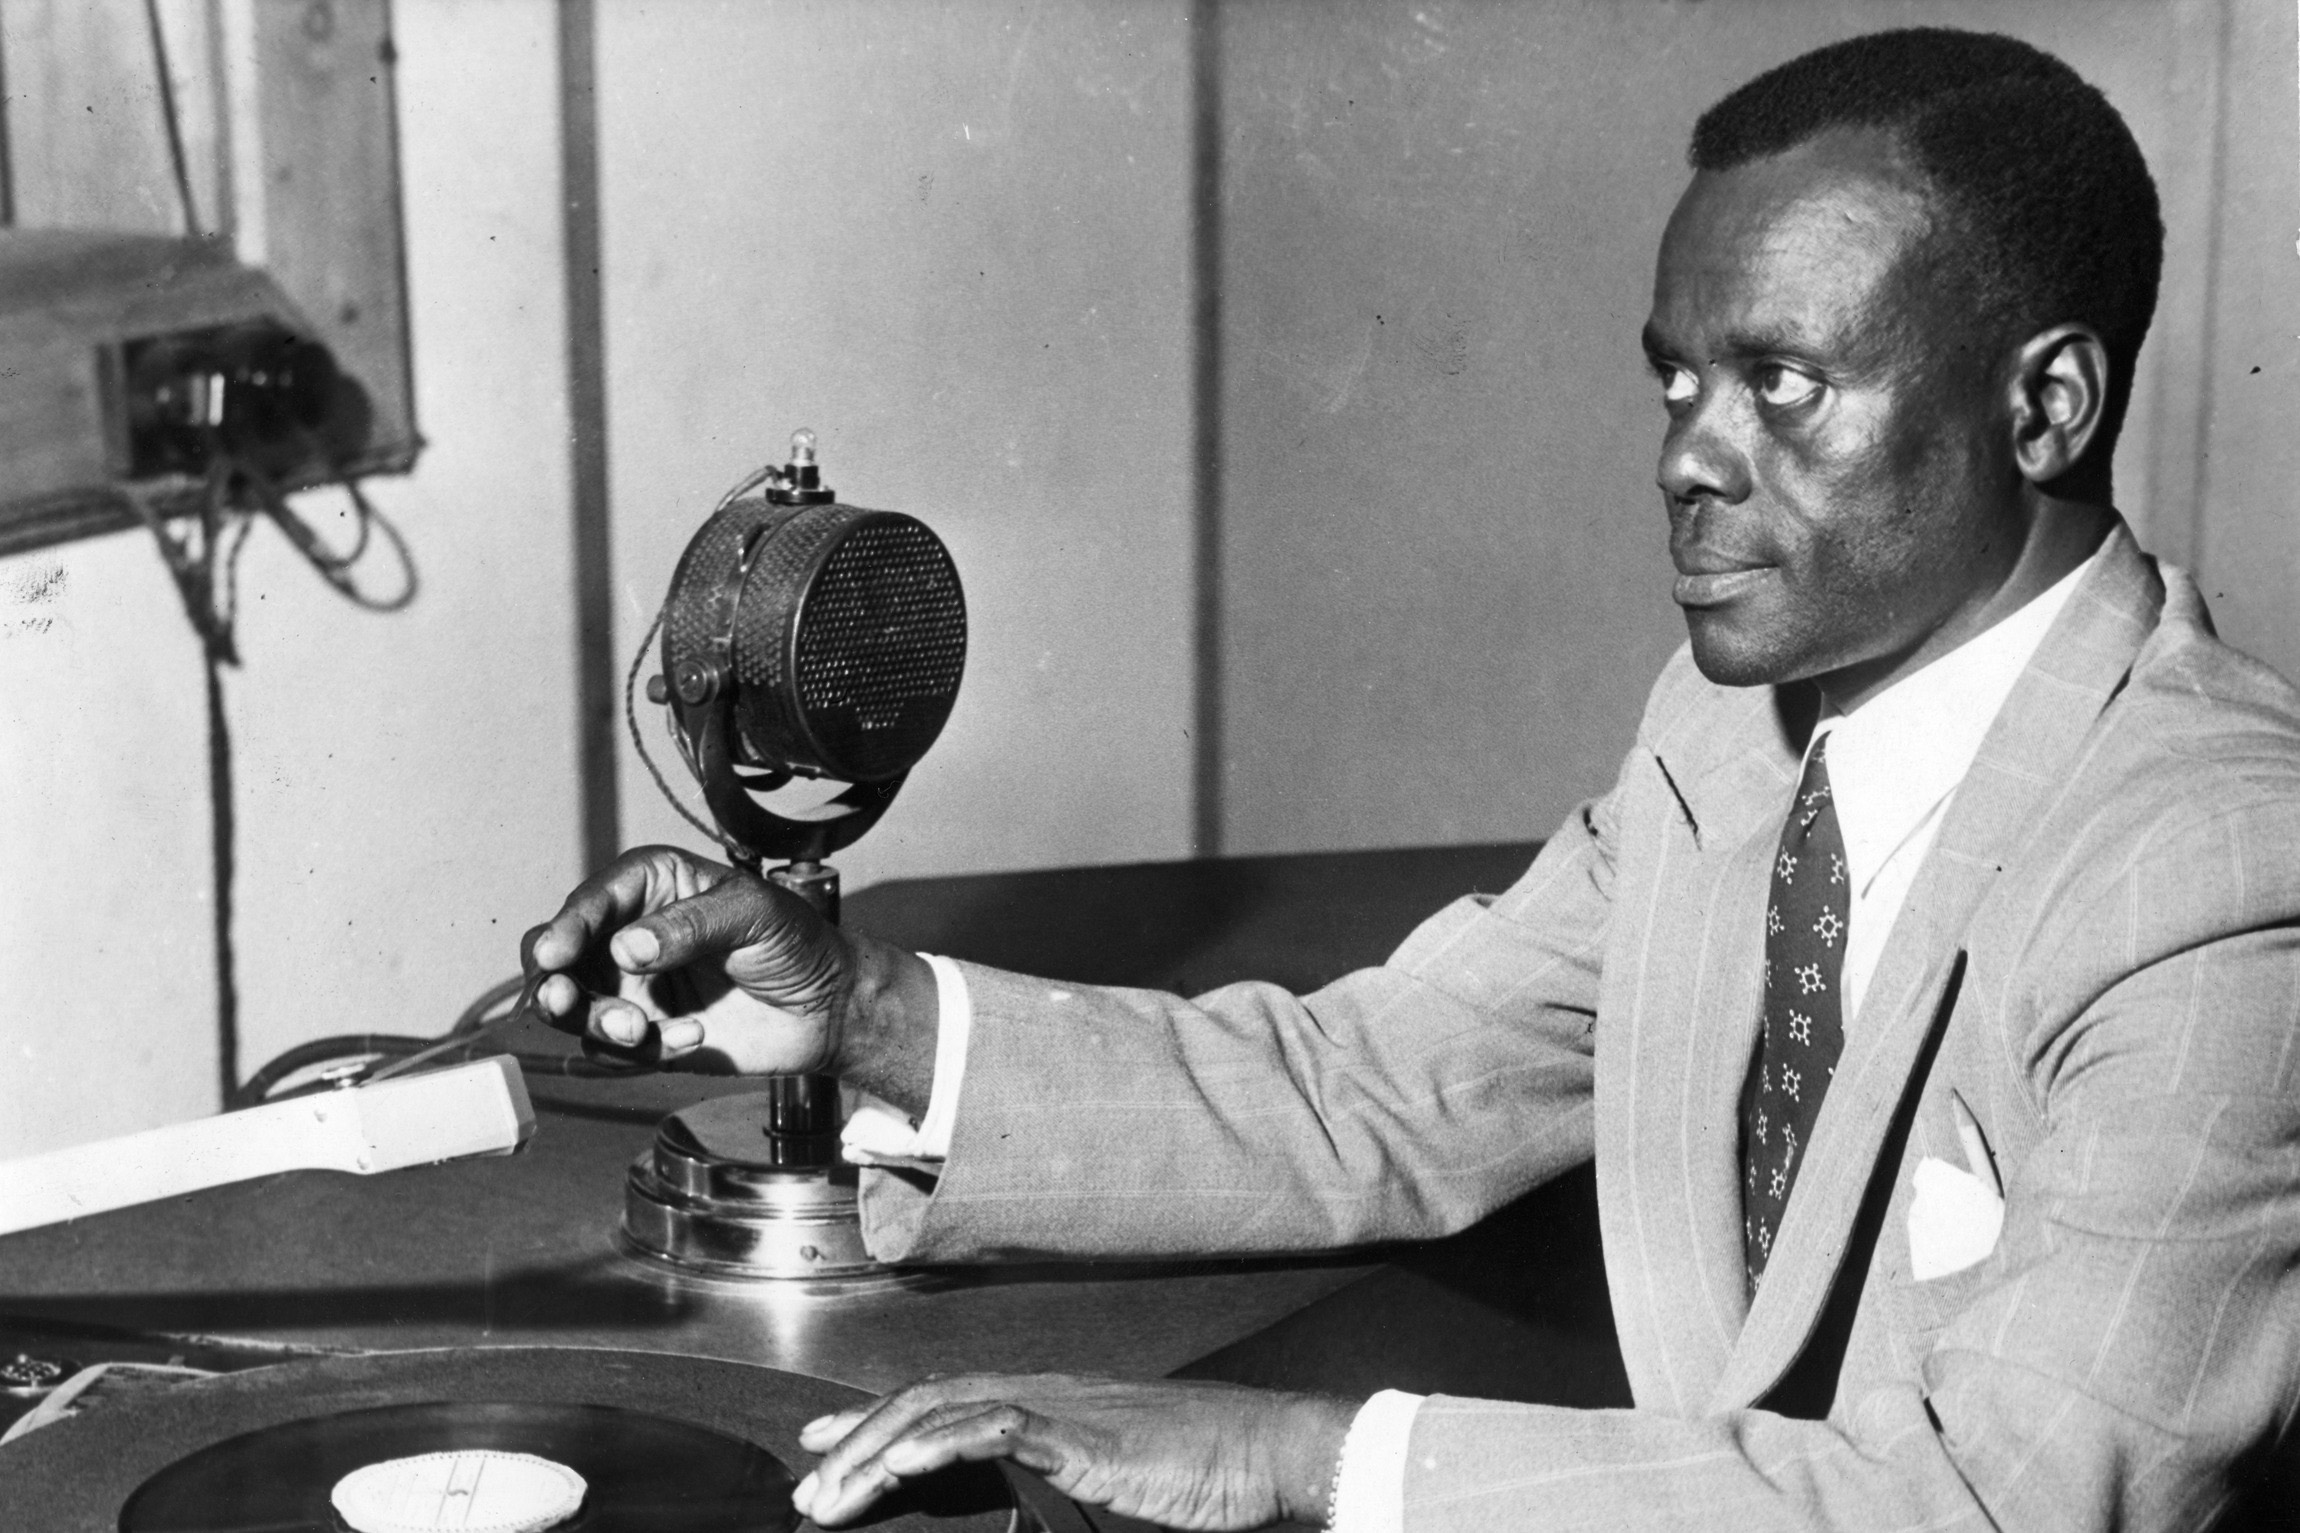 April 1955: King Edward Masinga broadcasts the Durban SABC's Bantu Programme. He composed songs, wrote radio plays in isiZulu and translated many English plays into isiZulu for broadcasting. (Photograph by Drum photography / BAHA)